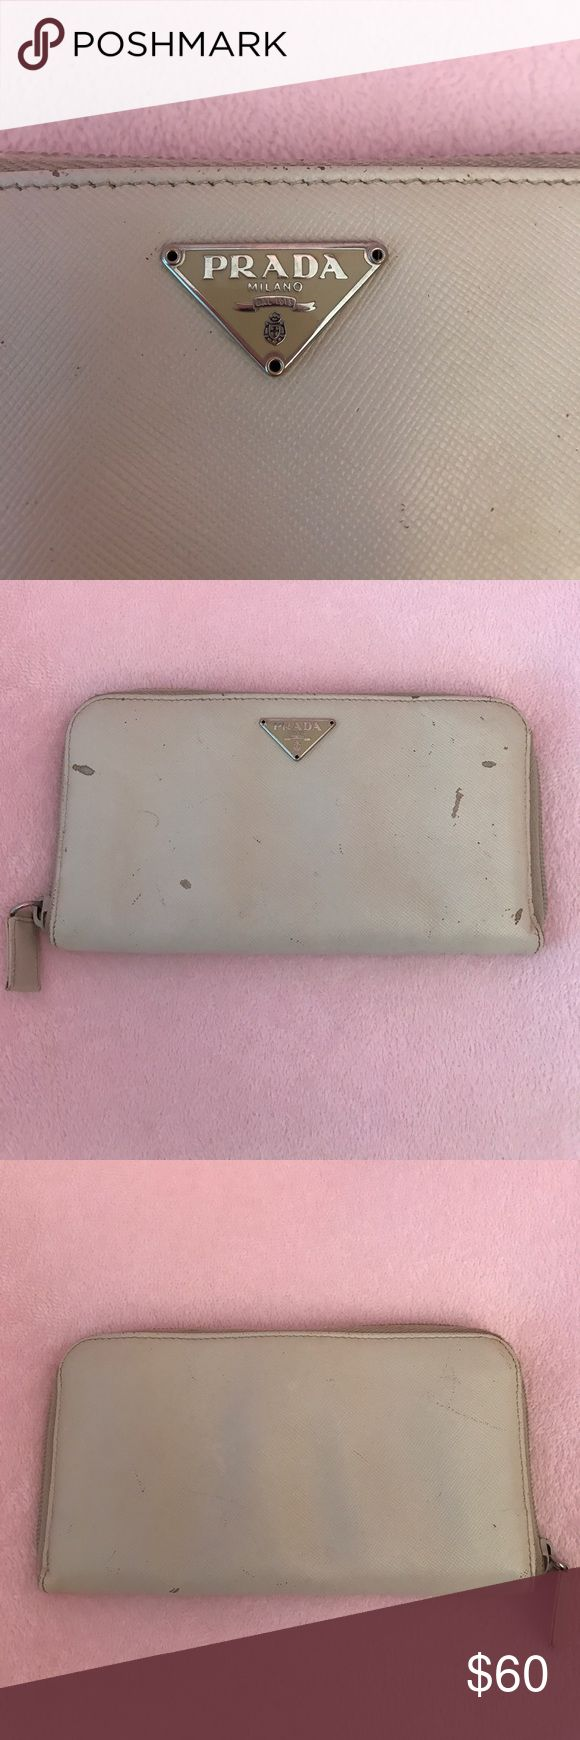 PRADA wallet Used 100% authentic Prada wallet. As you can see in the photos this wallet is well loved. There are some obvious signs of wear. Unfortunately my water bottle opened in my purse and soaked my wallet so there is warping. Overall still has a lot of life left in it. Zippers work perfectly. Price reflects condition. Price is firm I will not except any offers. Thank you! NO TRADES! Prada Bags Wallets